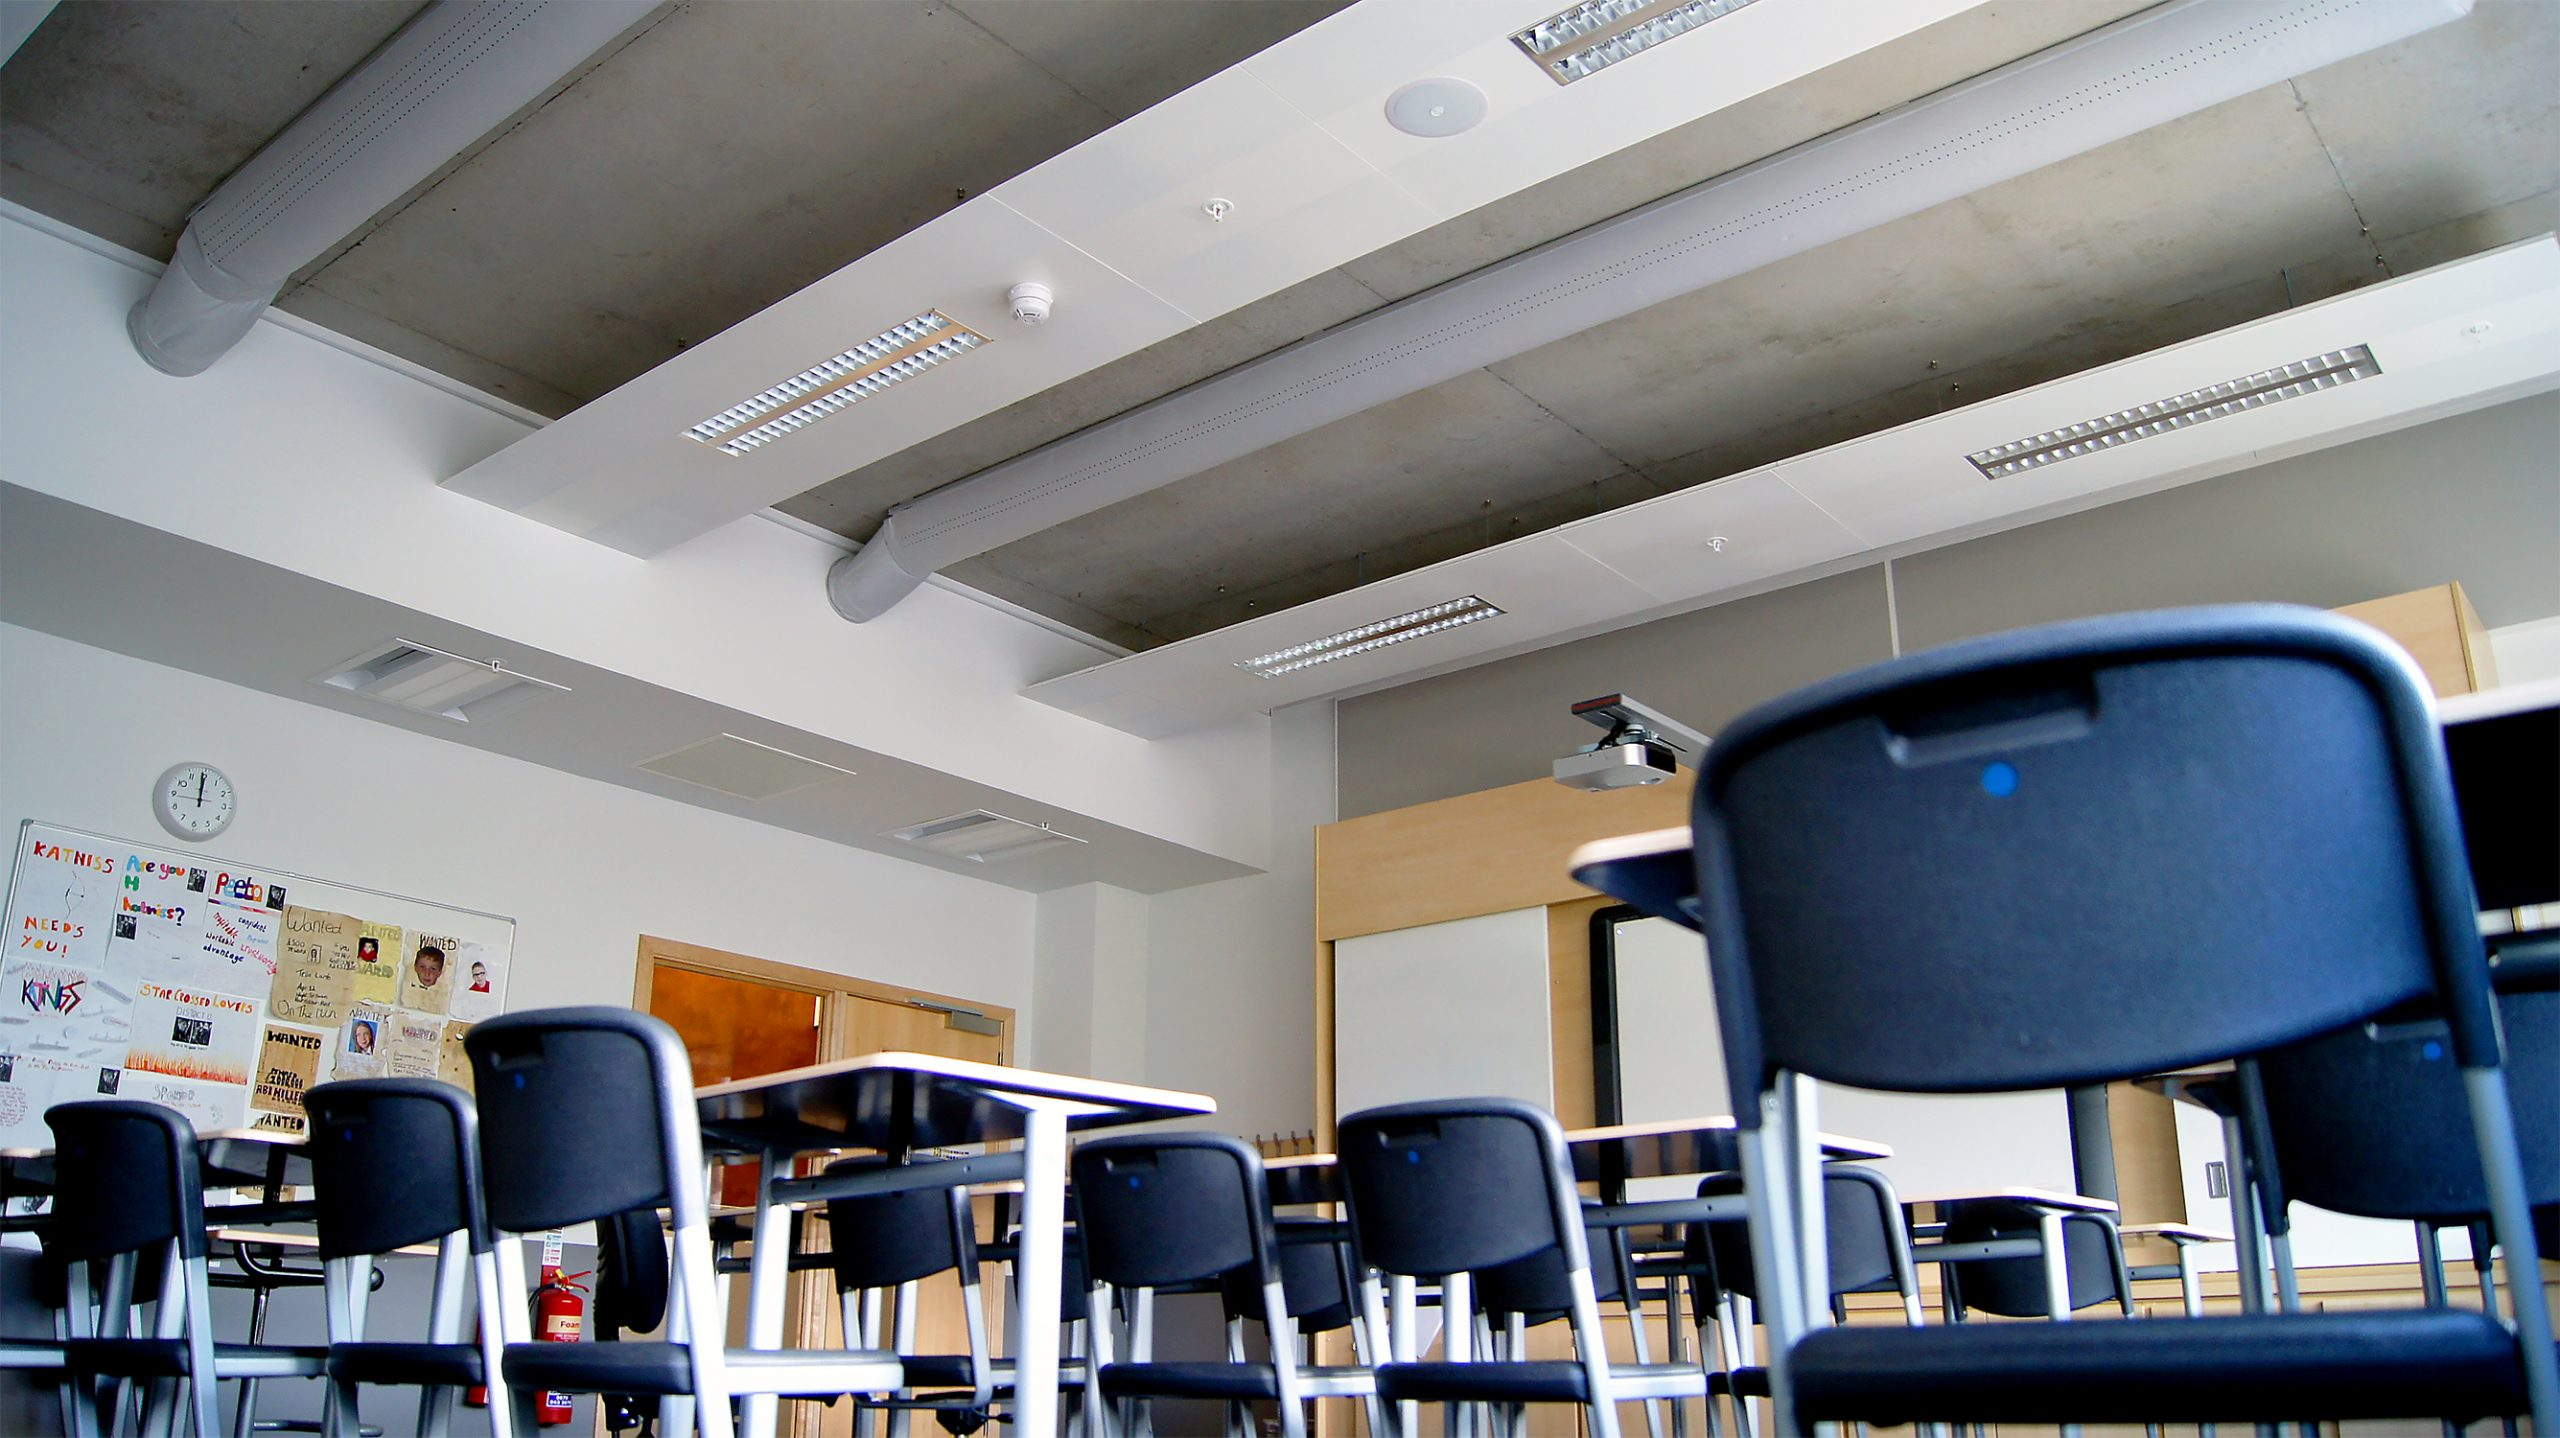 A classroom in Eastwood High School with fabric ducting